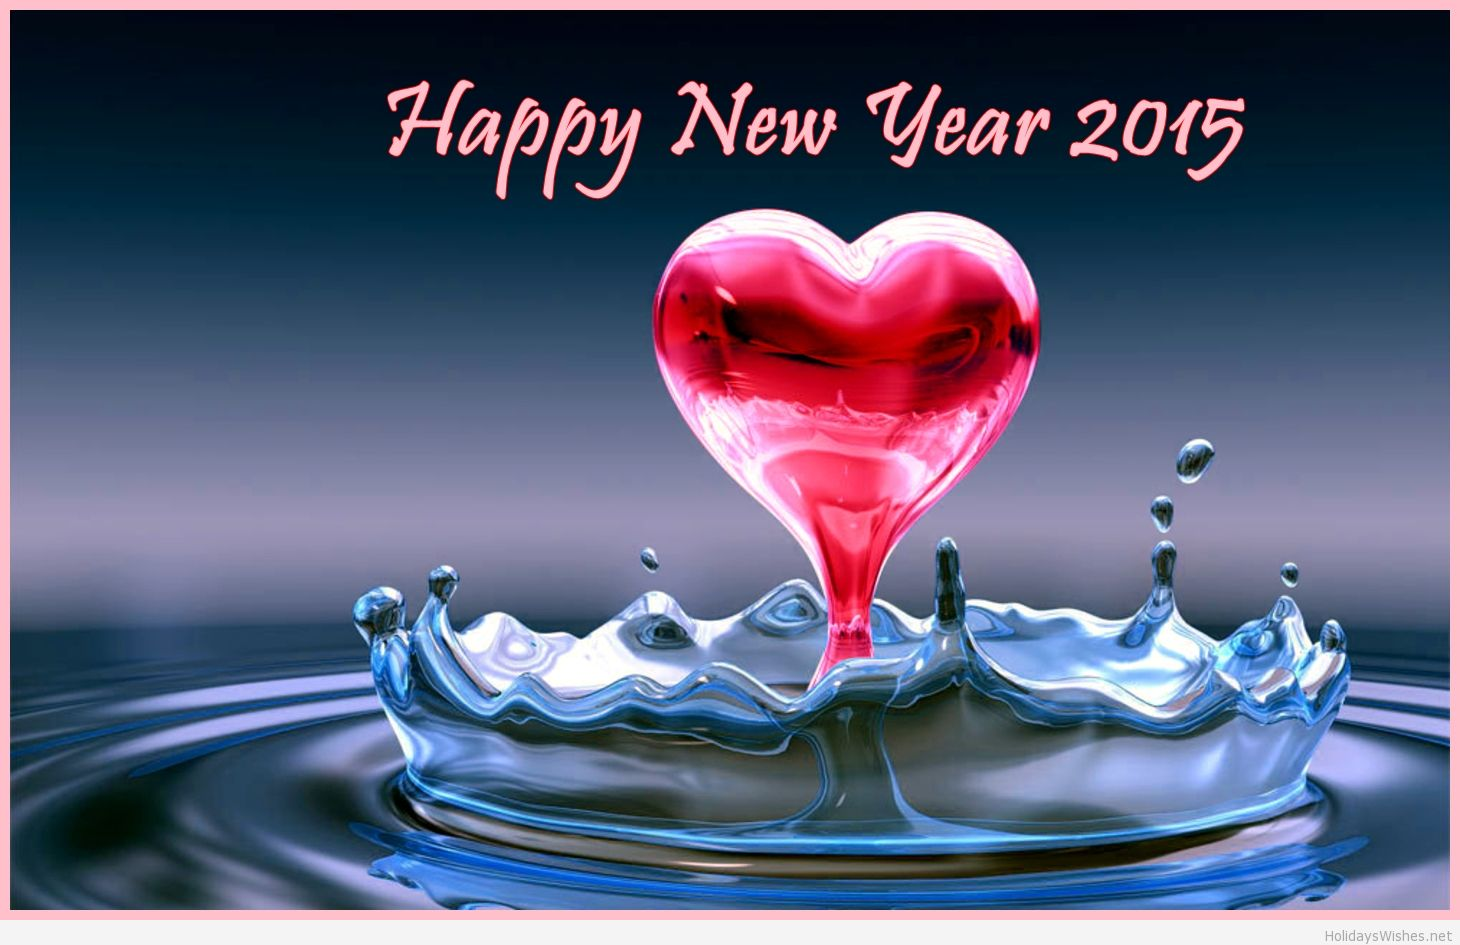 Free download Awesome 3d love wallpaper new year 2015 [1460x945